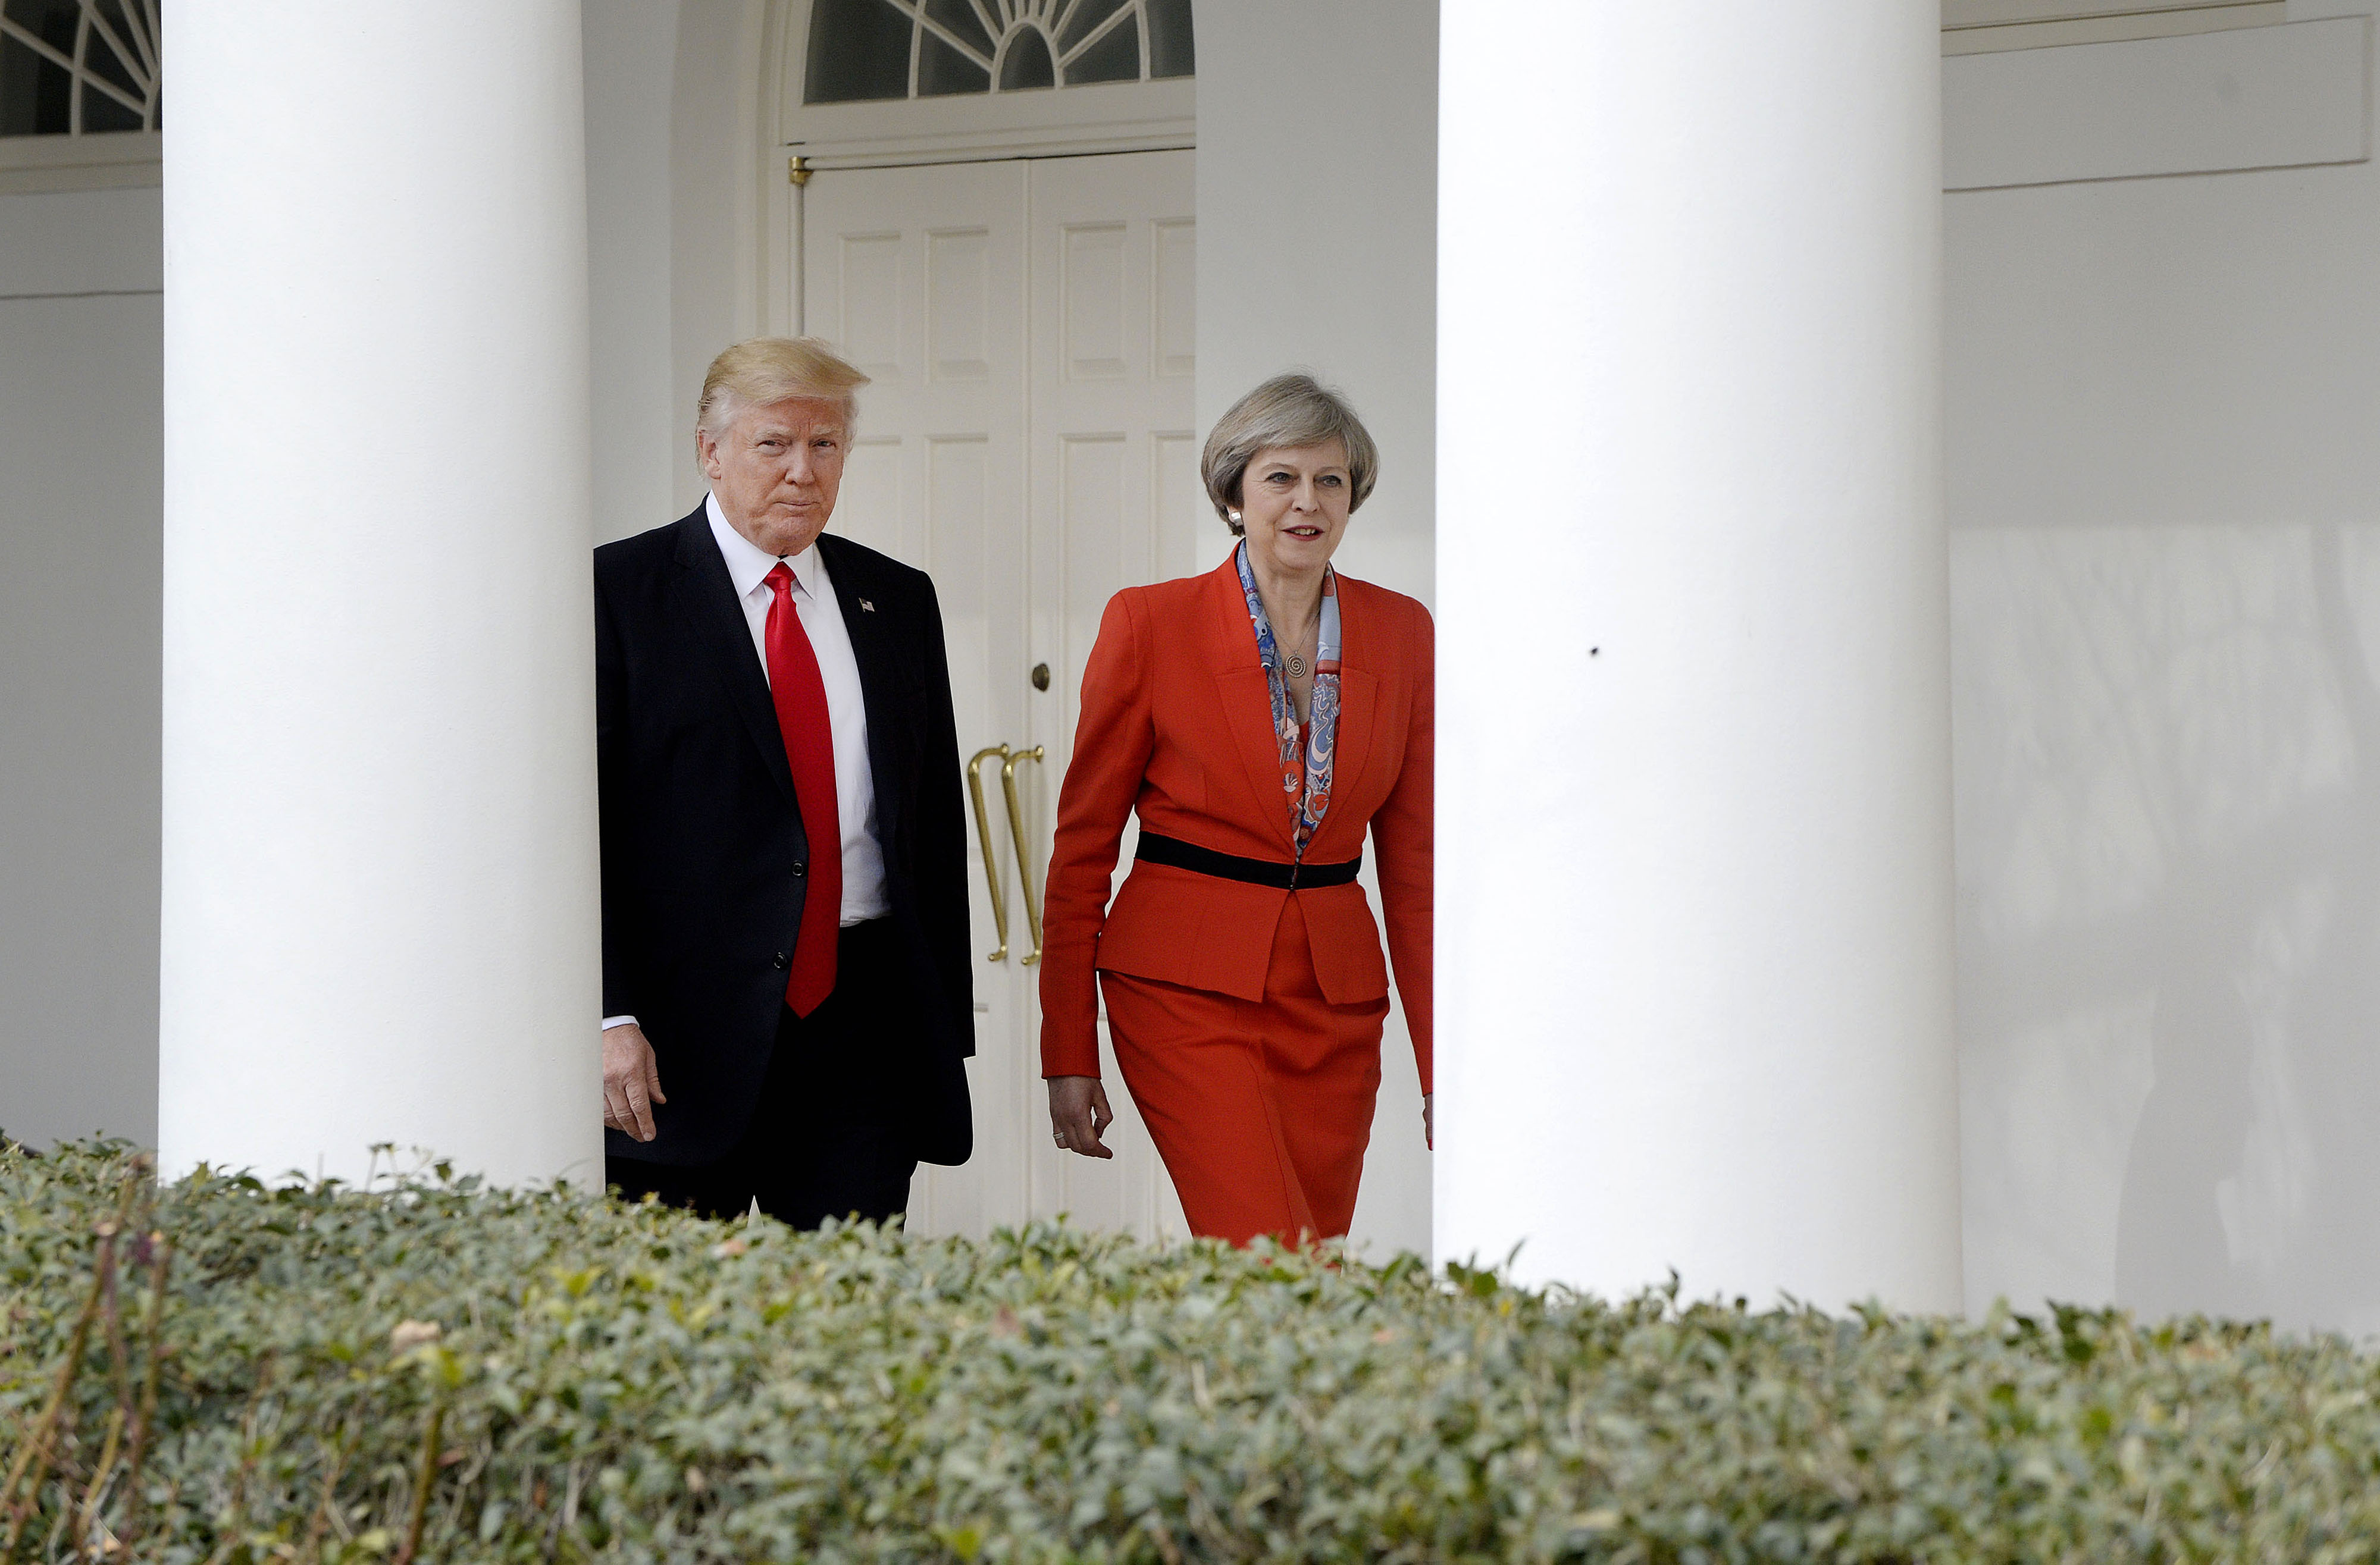 President Donald Trump, left, walks with Theresa May, U.K. prime minister, outside of the White House in Washington, on Jan. 27, 2017.